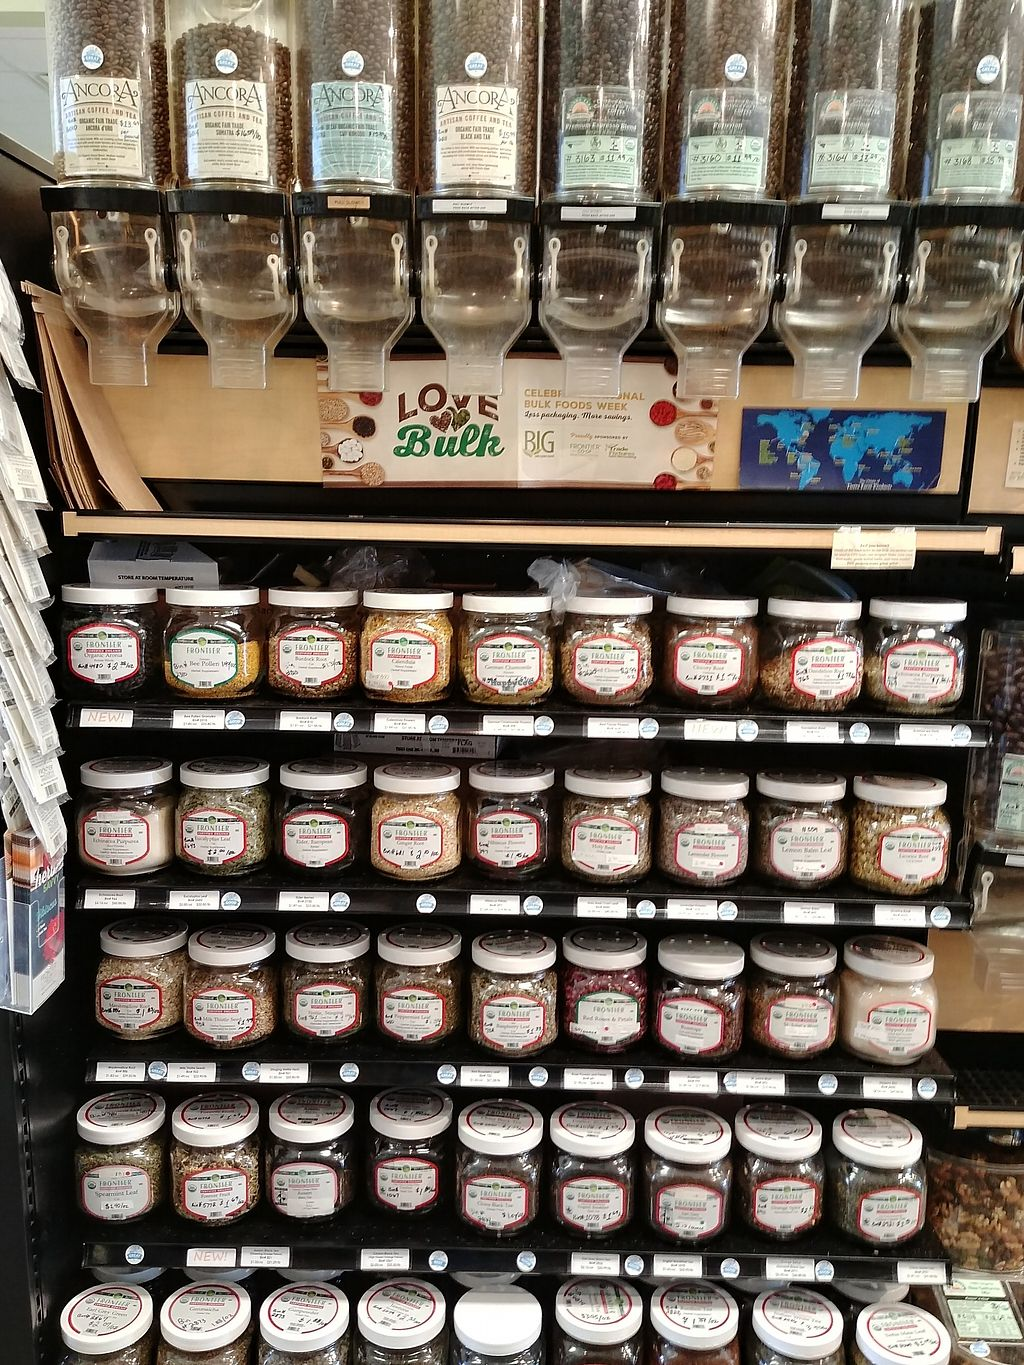 """Photo of Choices Natural Market  by <a href=""""/members/profile/PlantSim"""">PlantSim</a> <br/>Certified organic bulk coffees and teas, so you can try just a little or stock up <br/> August 22, 2017  - <a href='/contact/abuse/image/9689/296001'>Report</a>"""